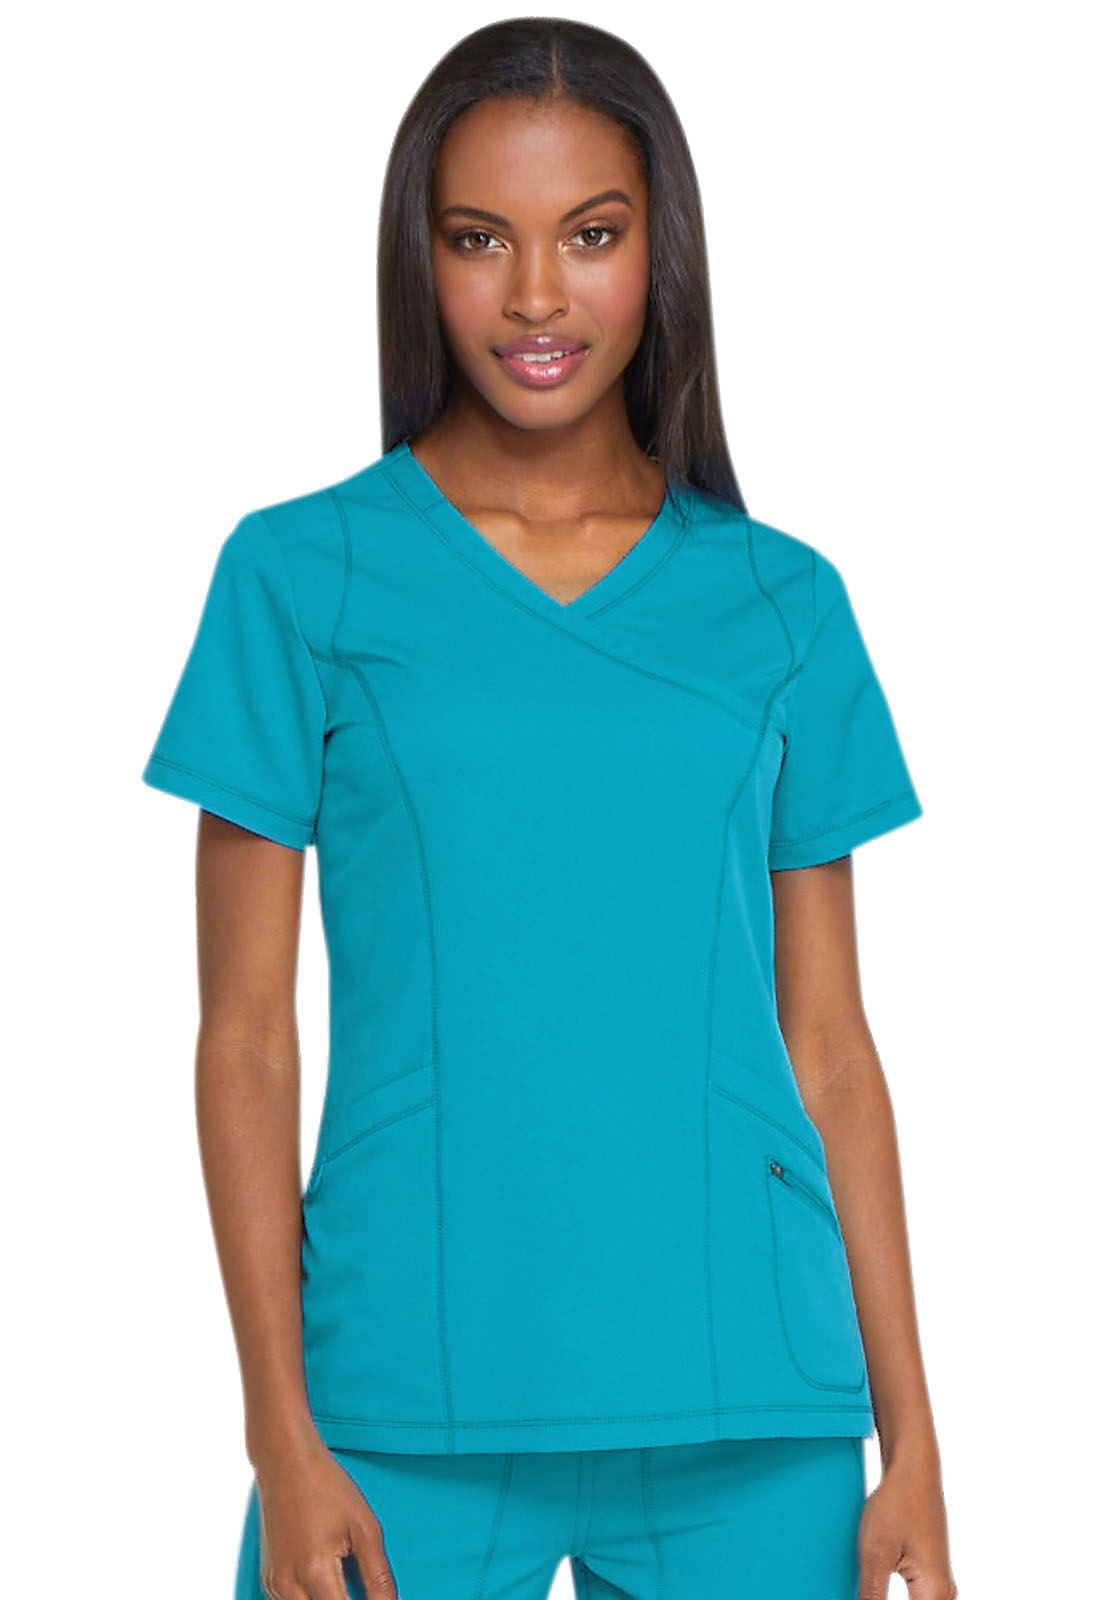 79b09a80228 Dickies Dynamix Mock Wrap Top in Teal Blue from Dickies Medical